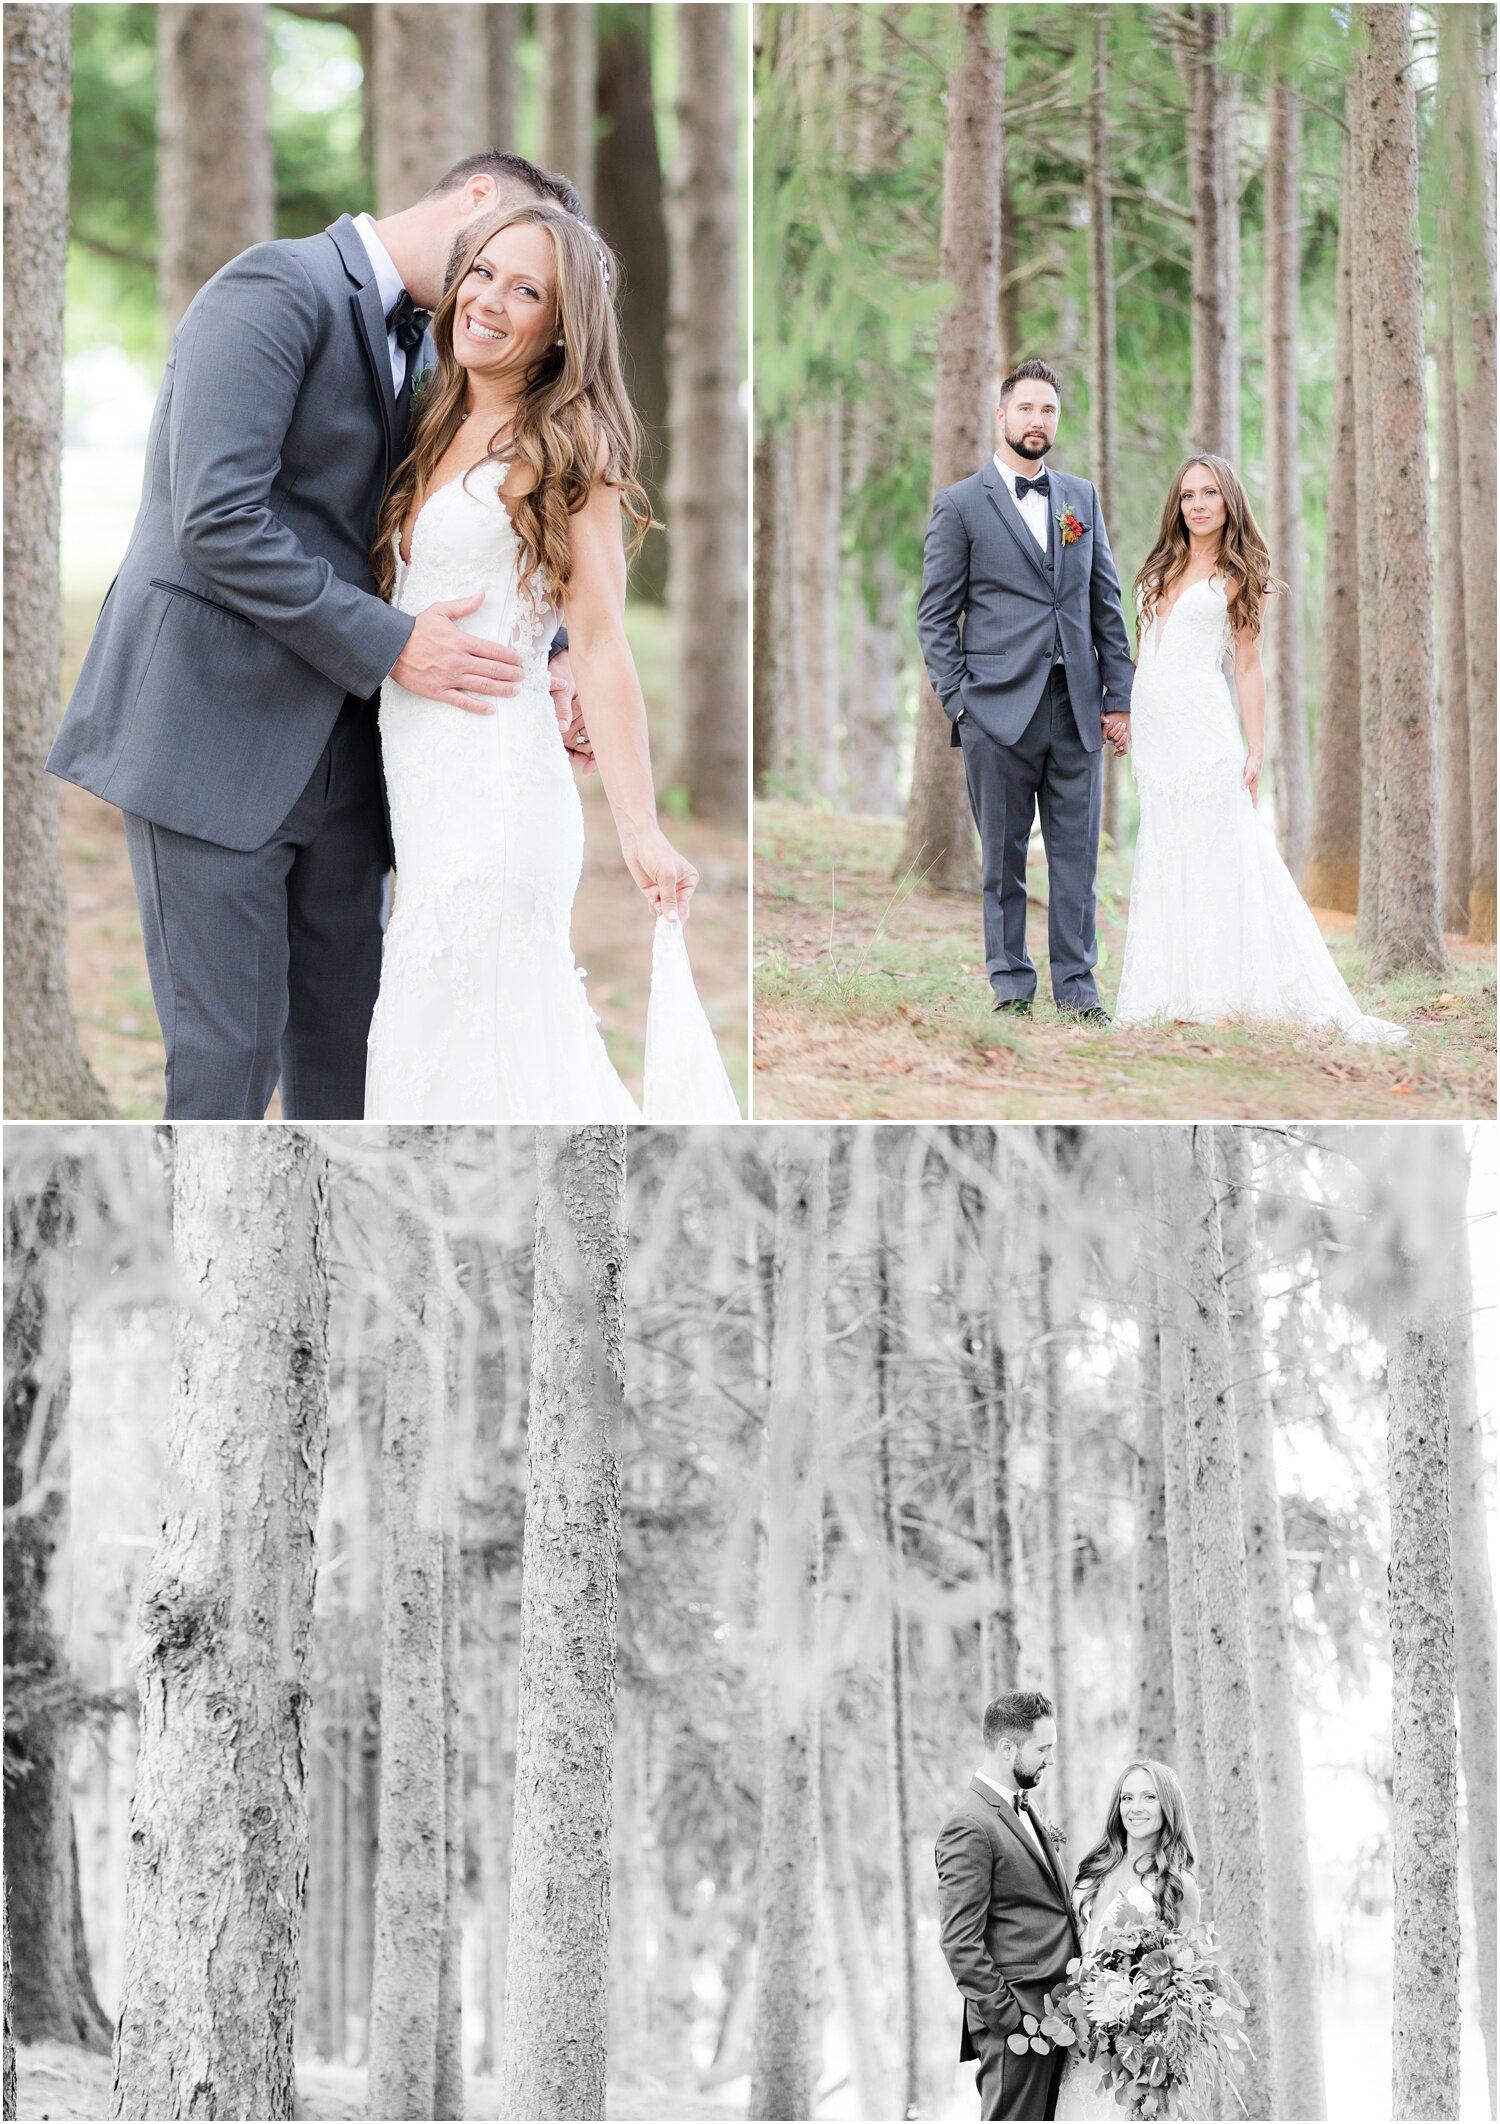 Wedding photos in the forrest at Windows on the Water at Frogbridge.